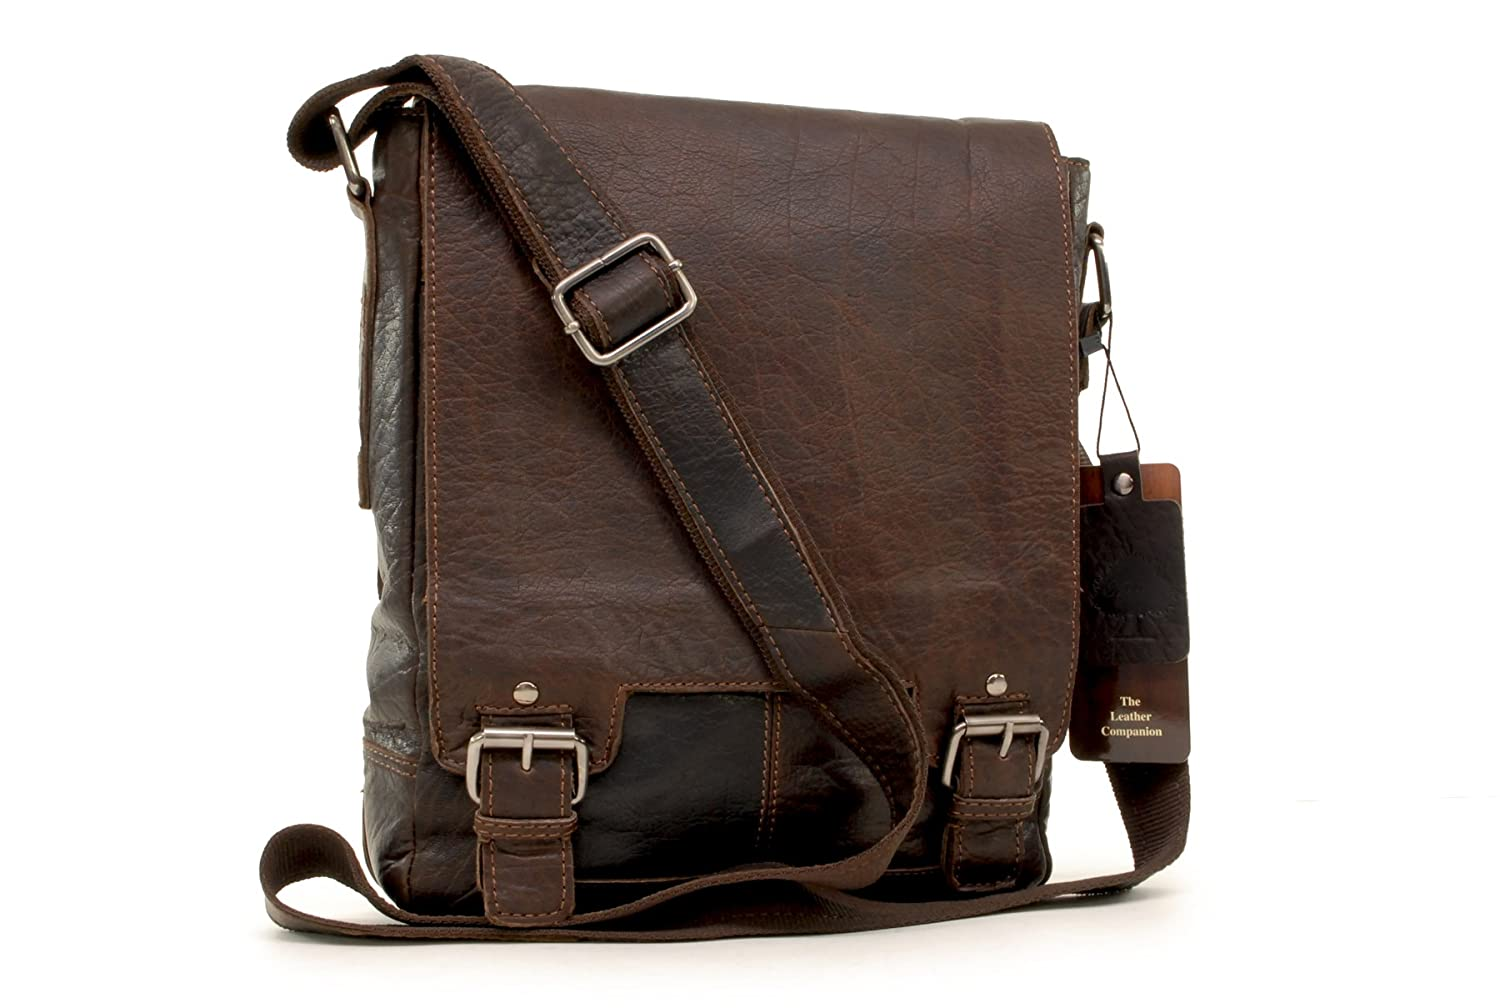 Ashwood Messenger Bag - Laptop iPad A4 Size - 8342 - Brown Leather Ashwood Leather